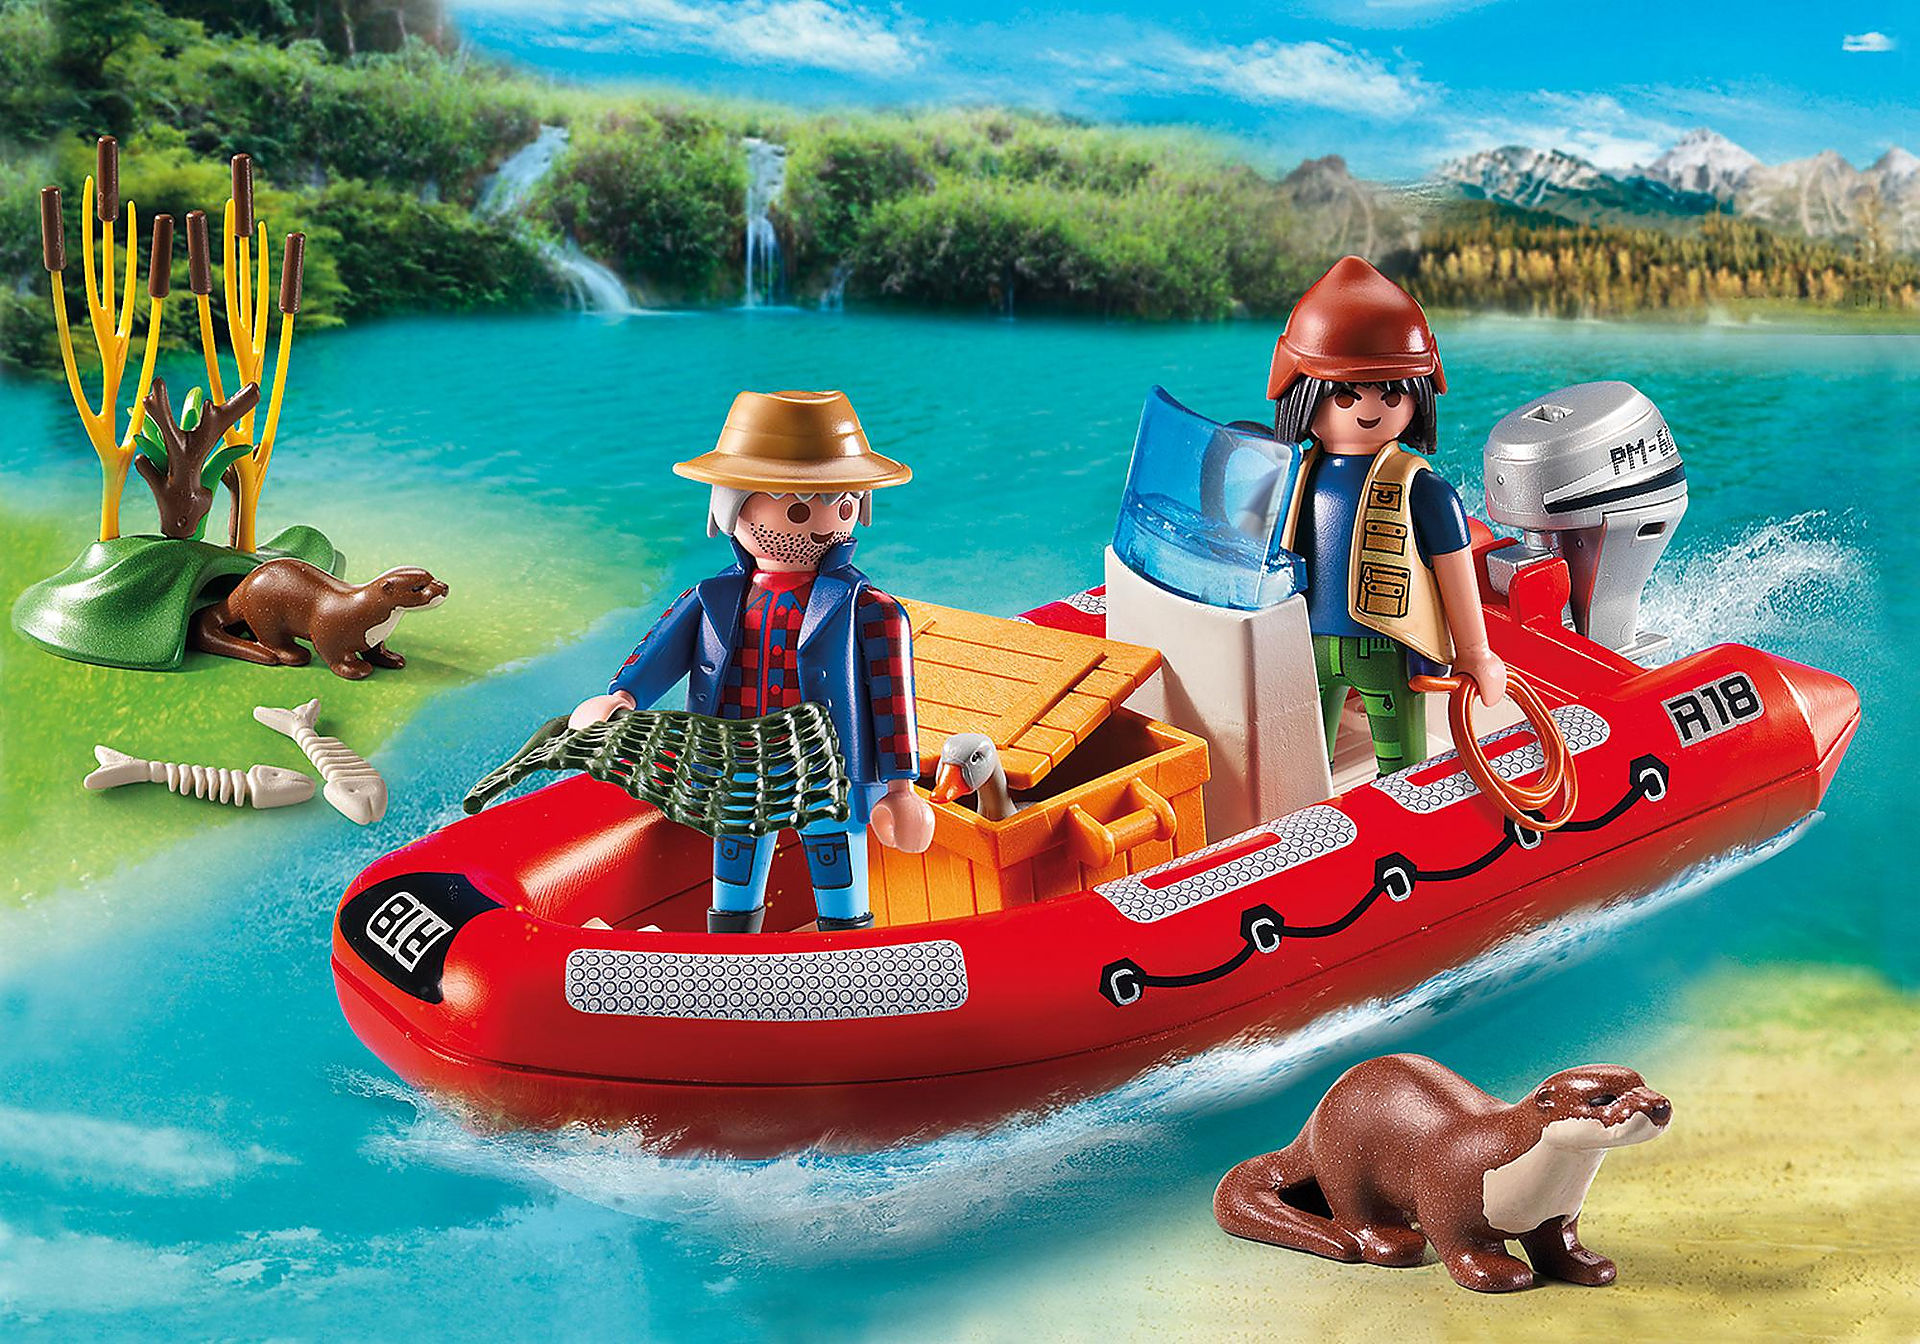 http://media.playmobil.com/i/playmobil/5559_product_detail/Schlauchboot mit Wilderern